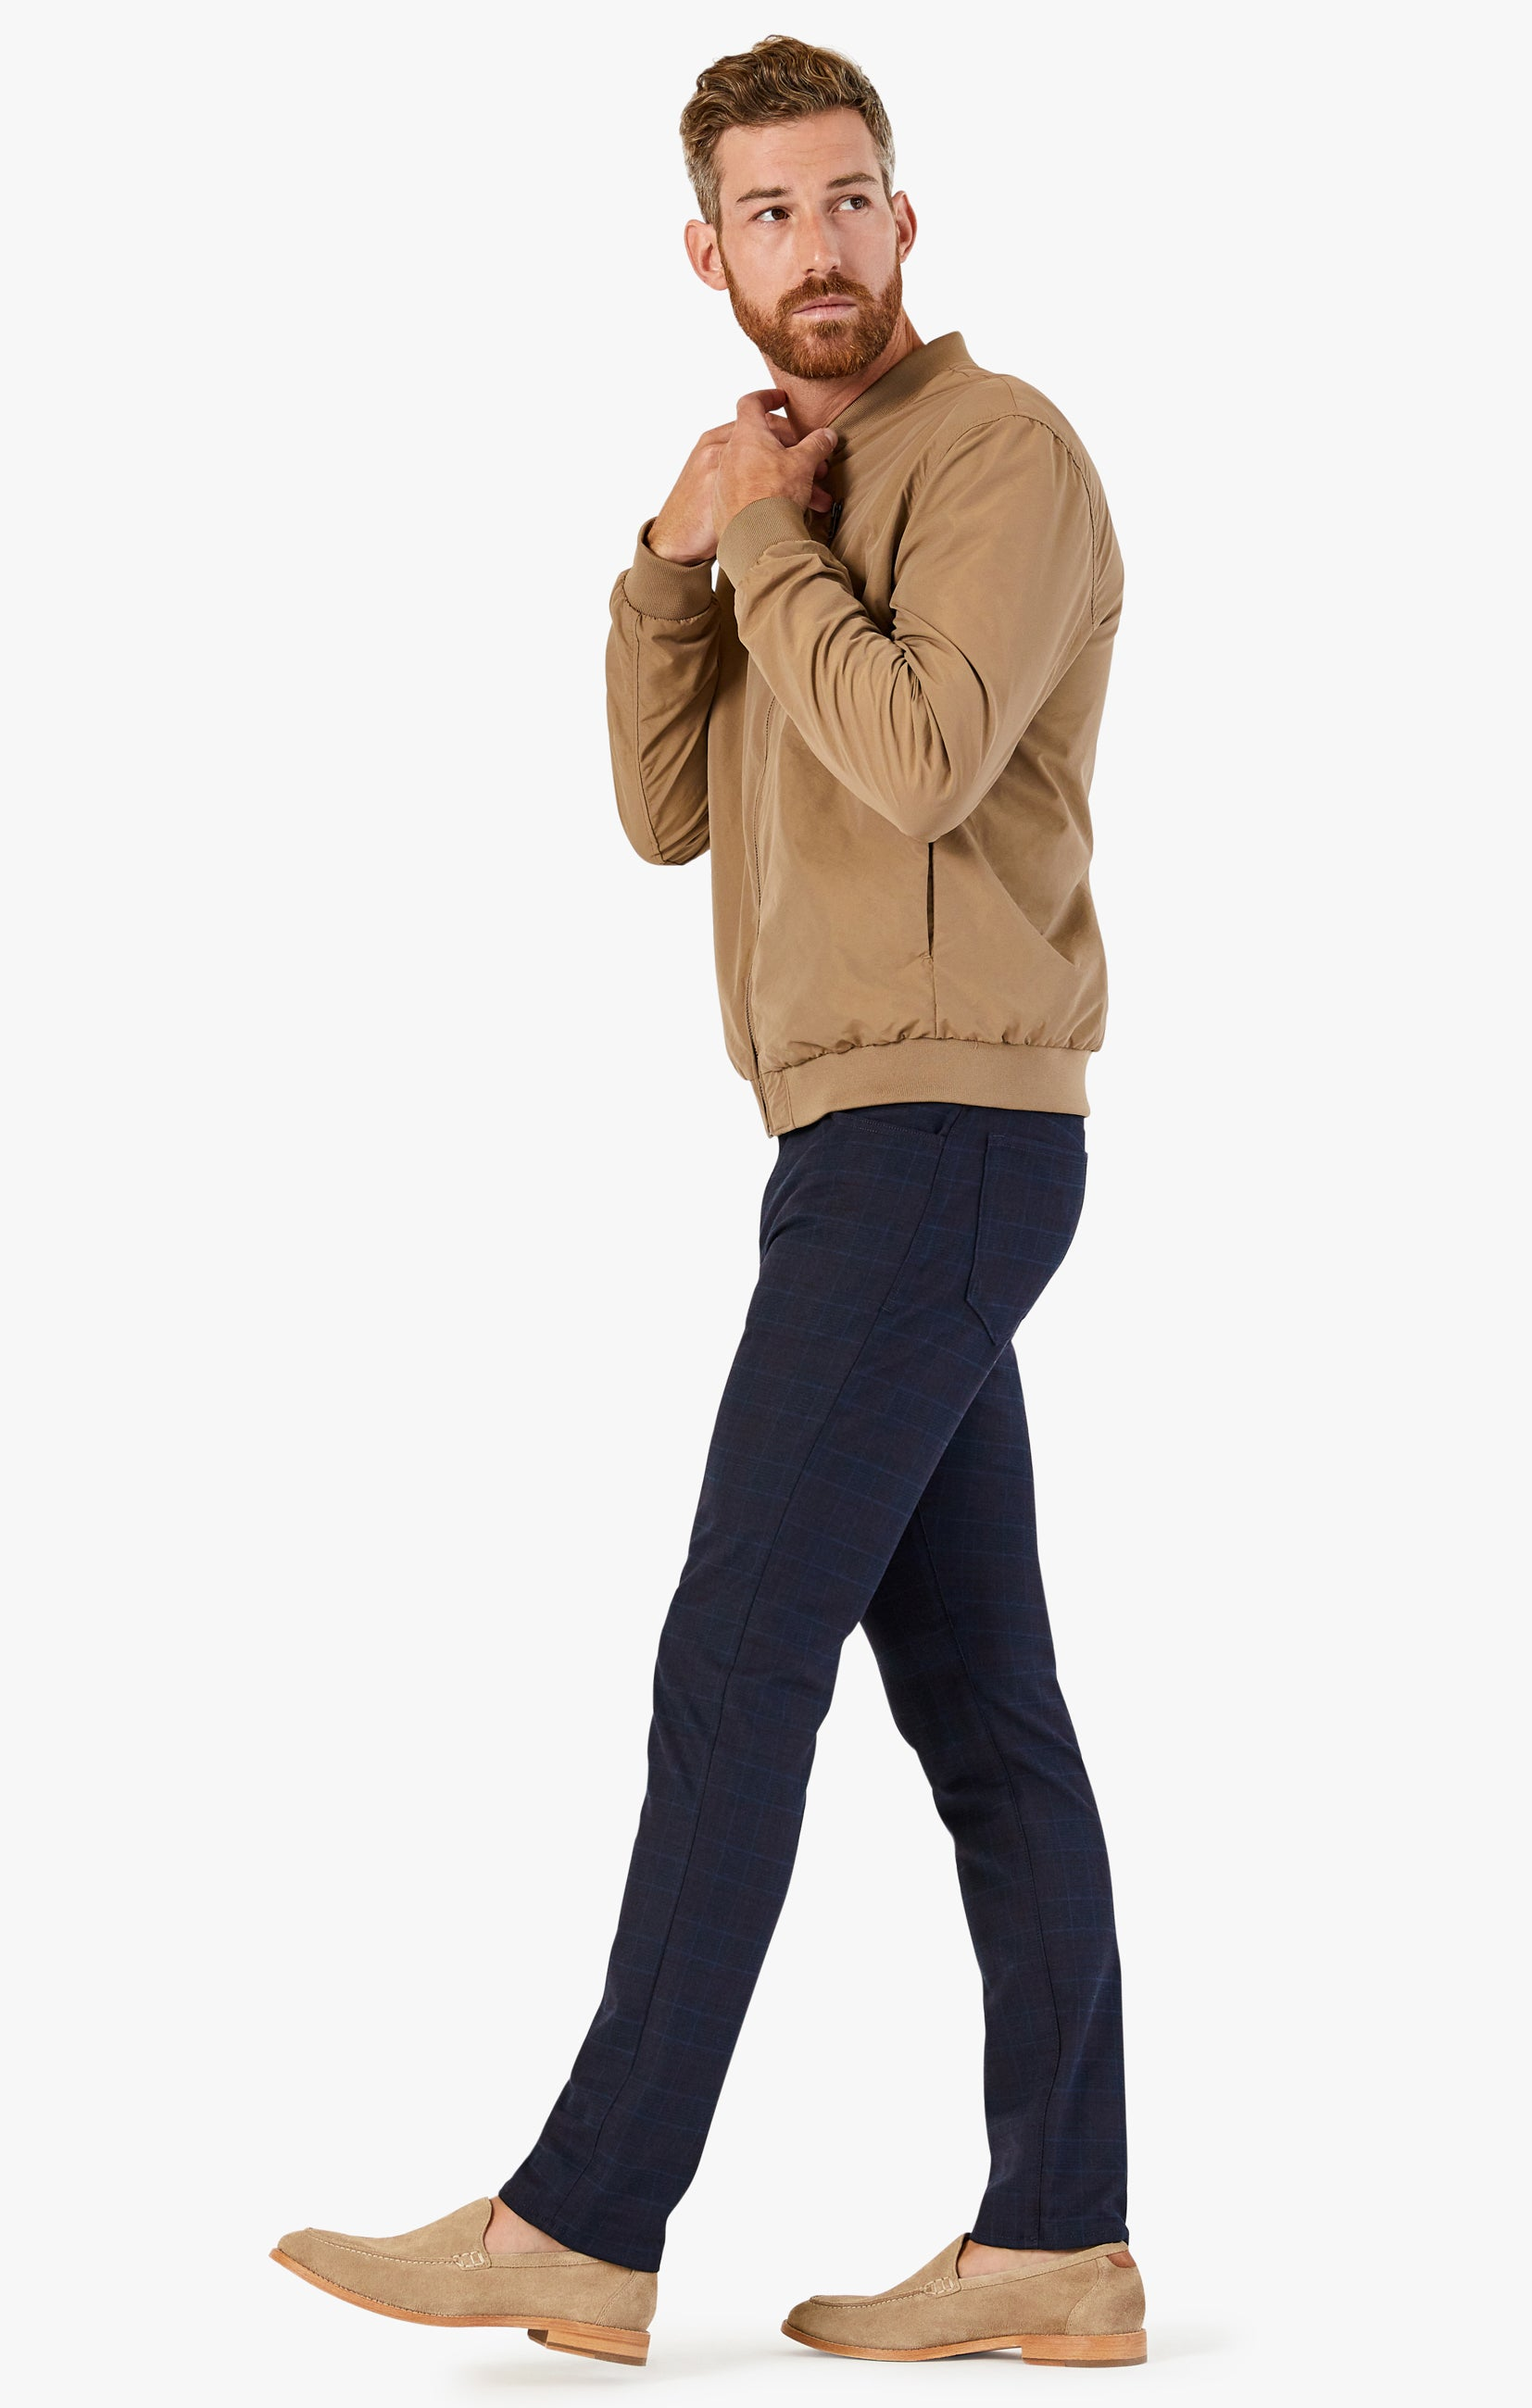 Cool Tapered Leg Pants In Navy Fancy Checked Image 3